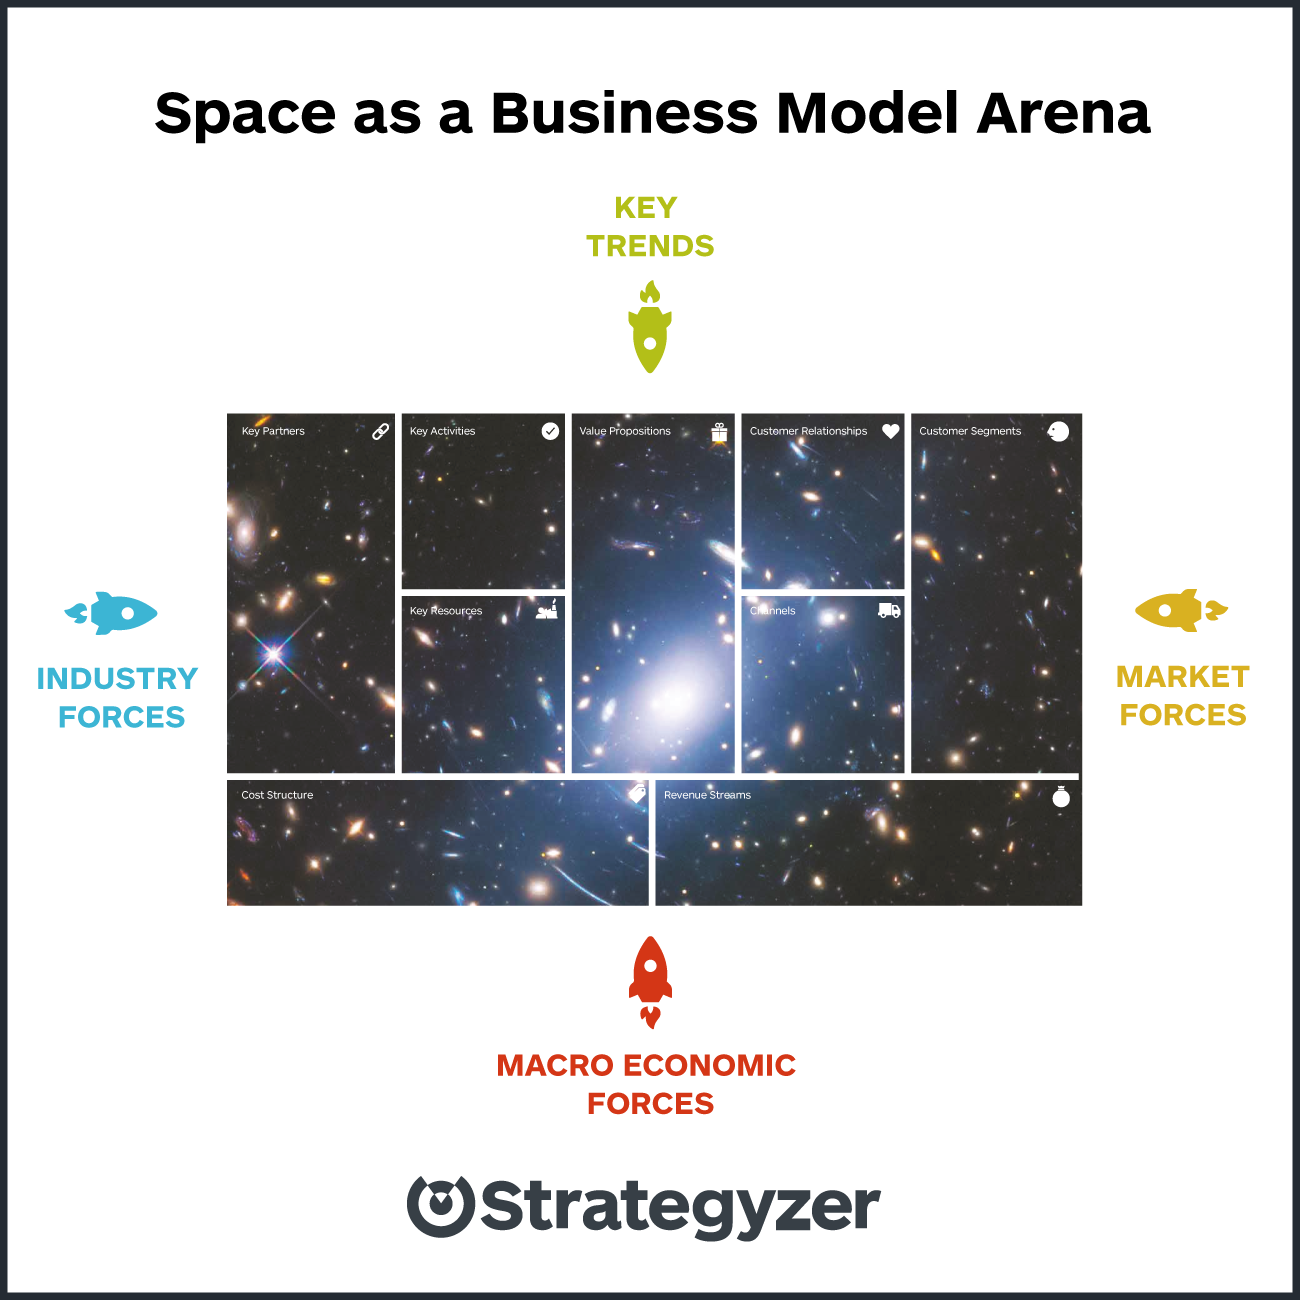 strategyzer-visual-space-as-a-business-model-arena (1)